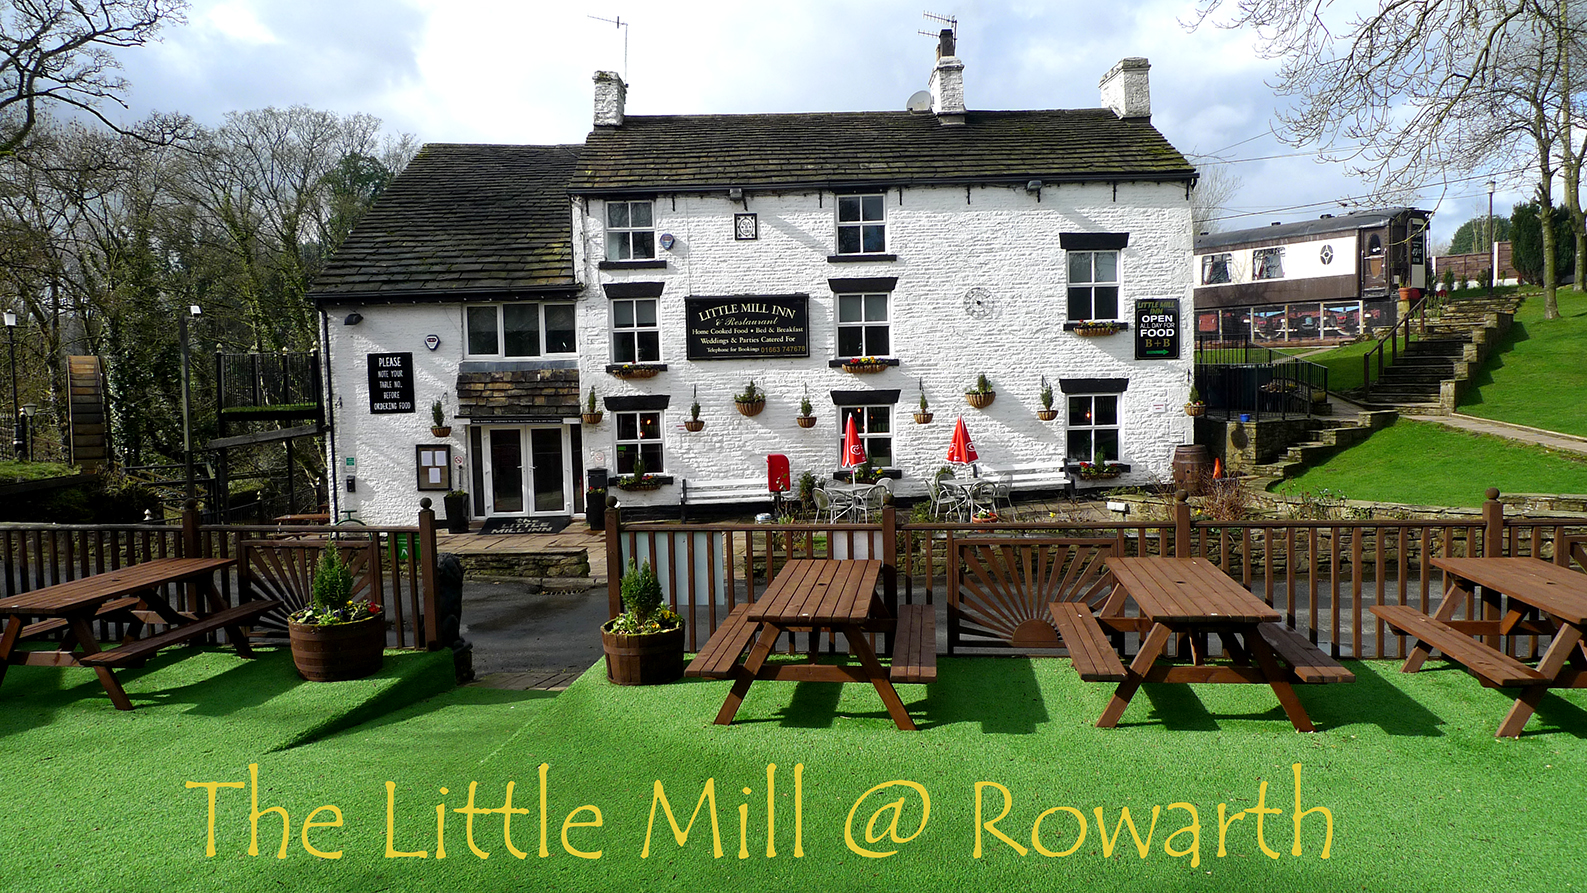 The Little Mill Inn